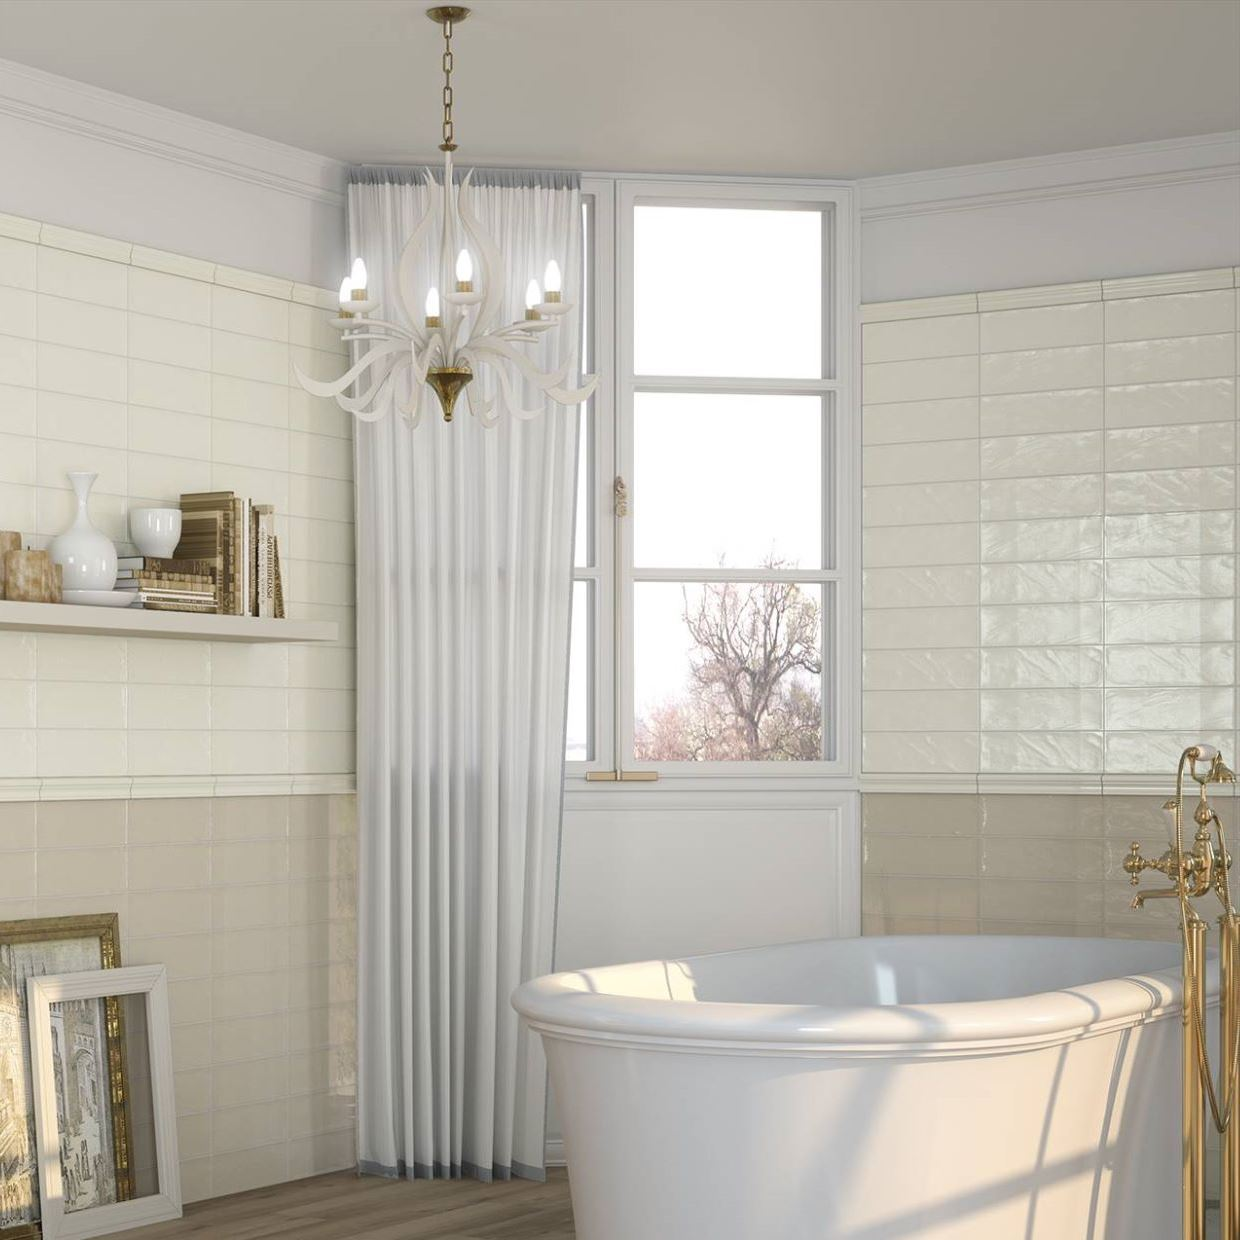 Mellow Ripple Effect Ivory Ceramic Wall